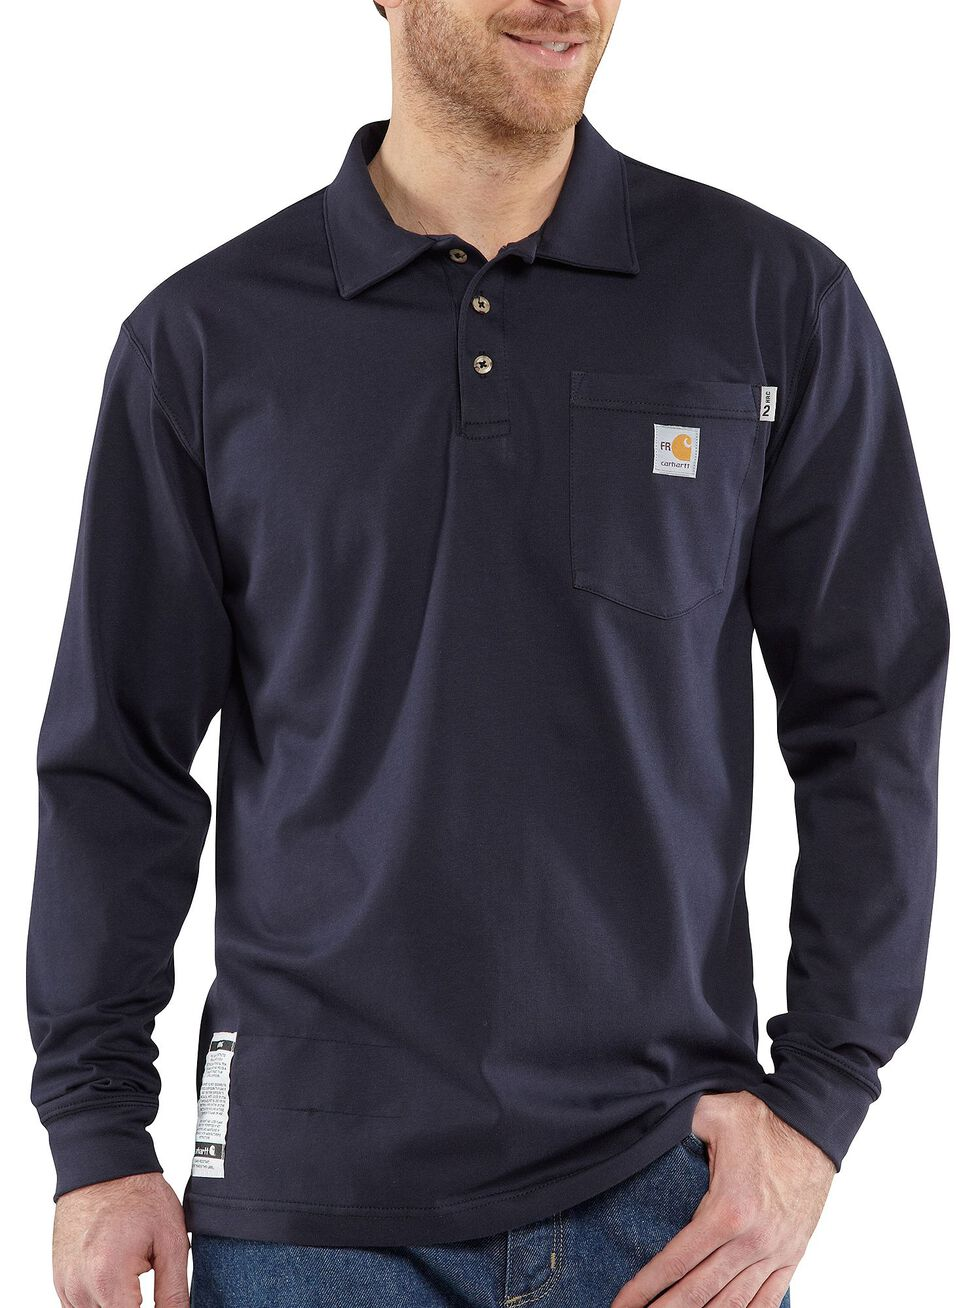 Carhartt Flame Resistant Force Long Sleeve Polo Shirt, Navy, hi-res